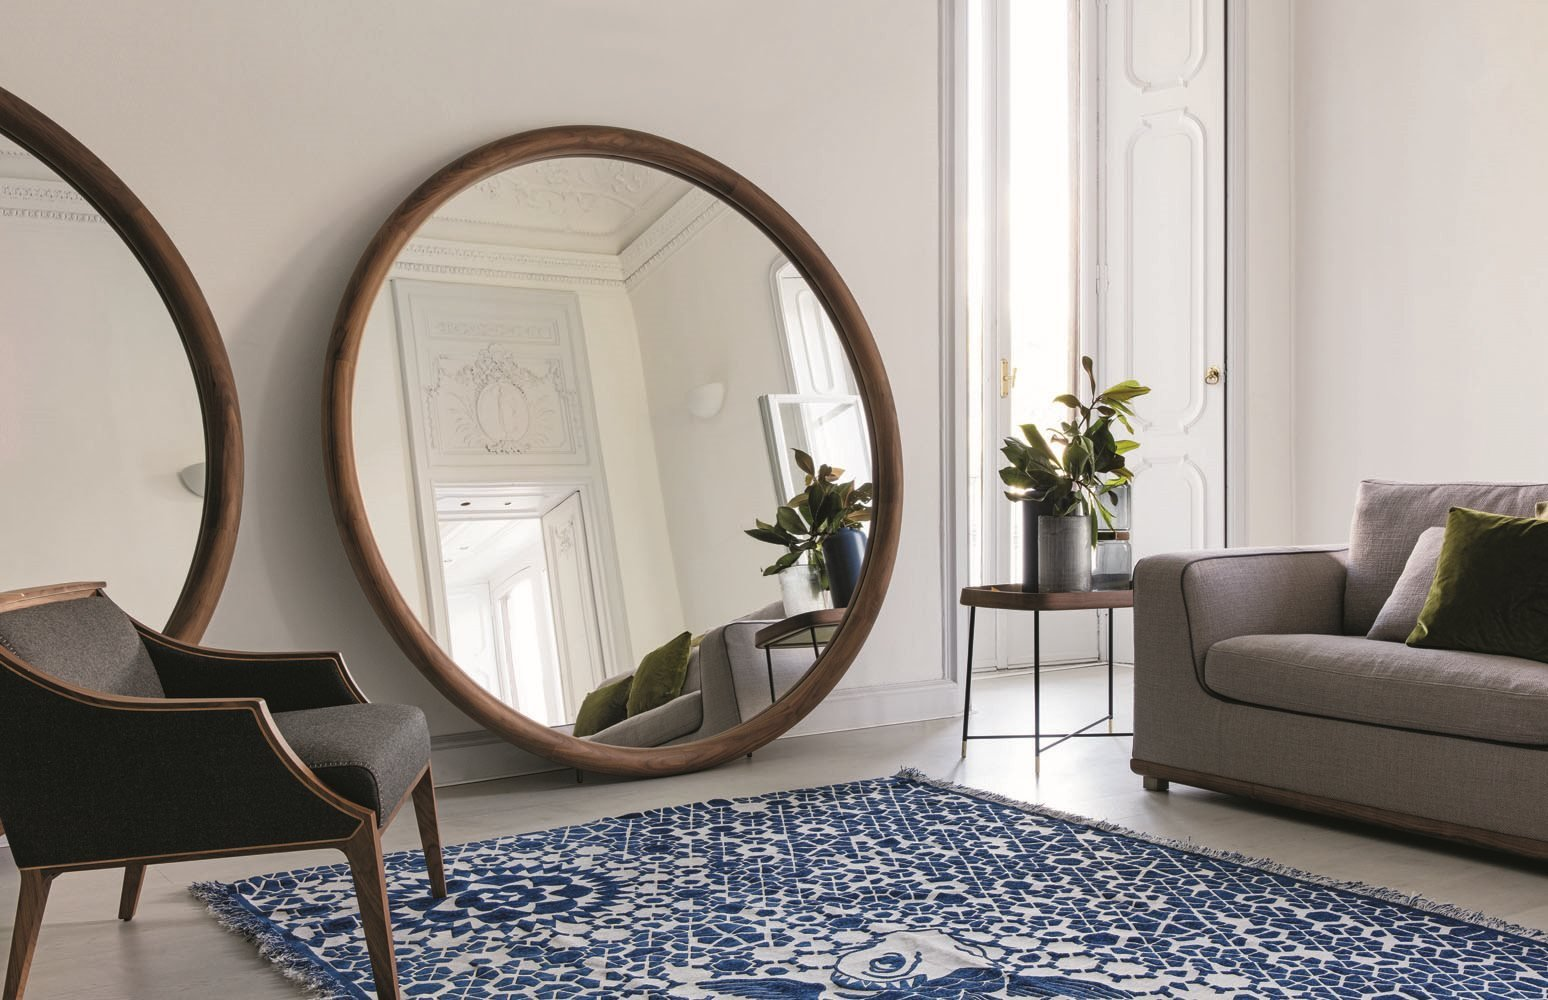 Giove Mirror from Porada, designed by T. Colzani